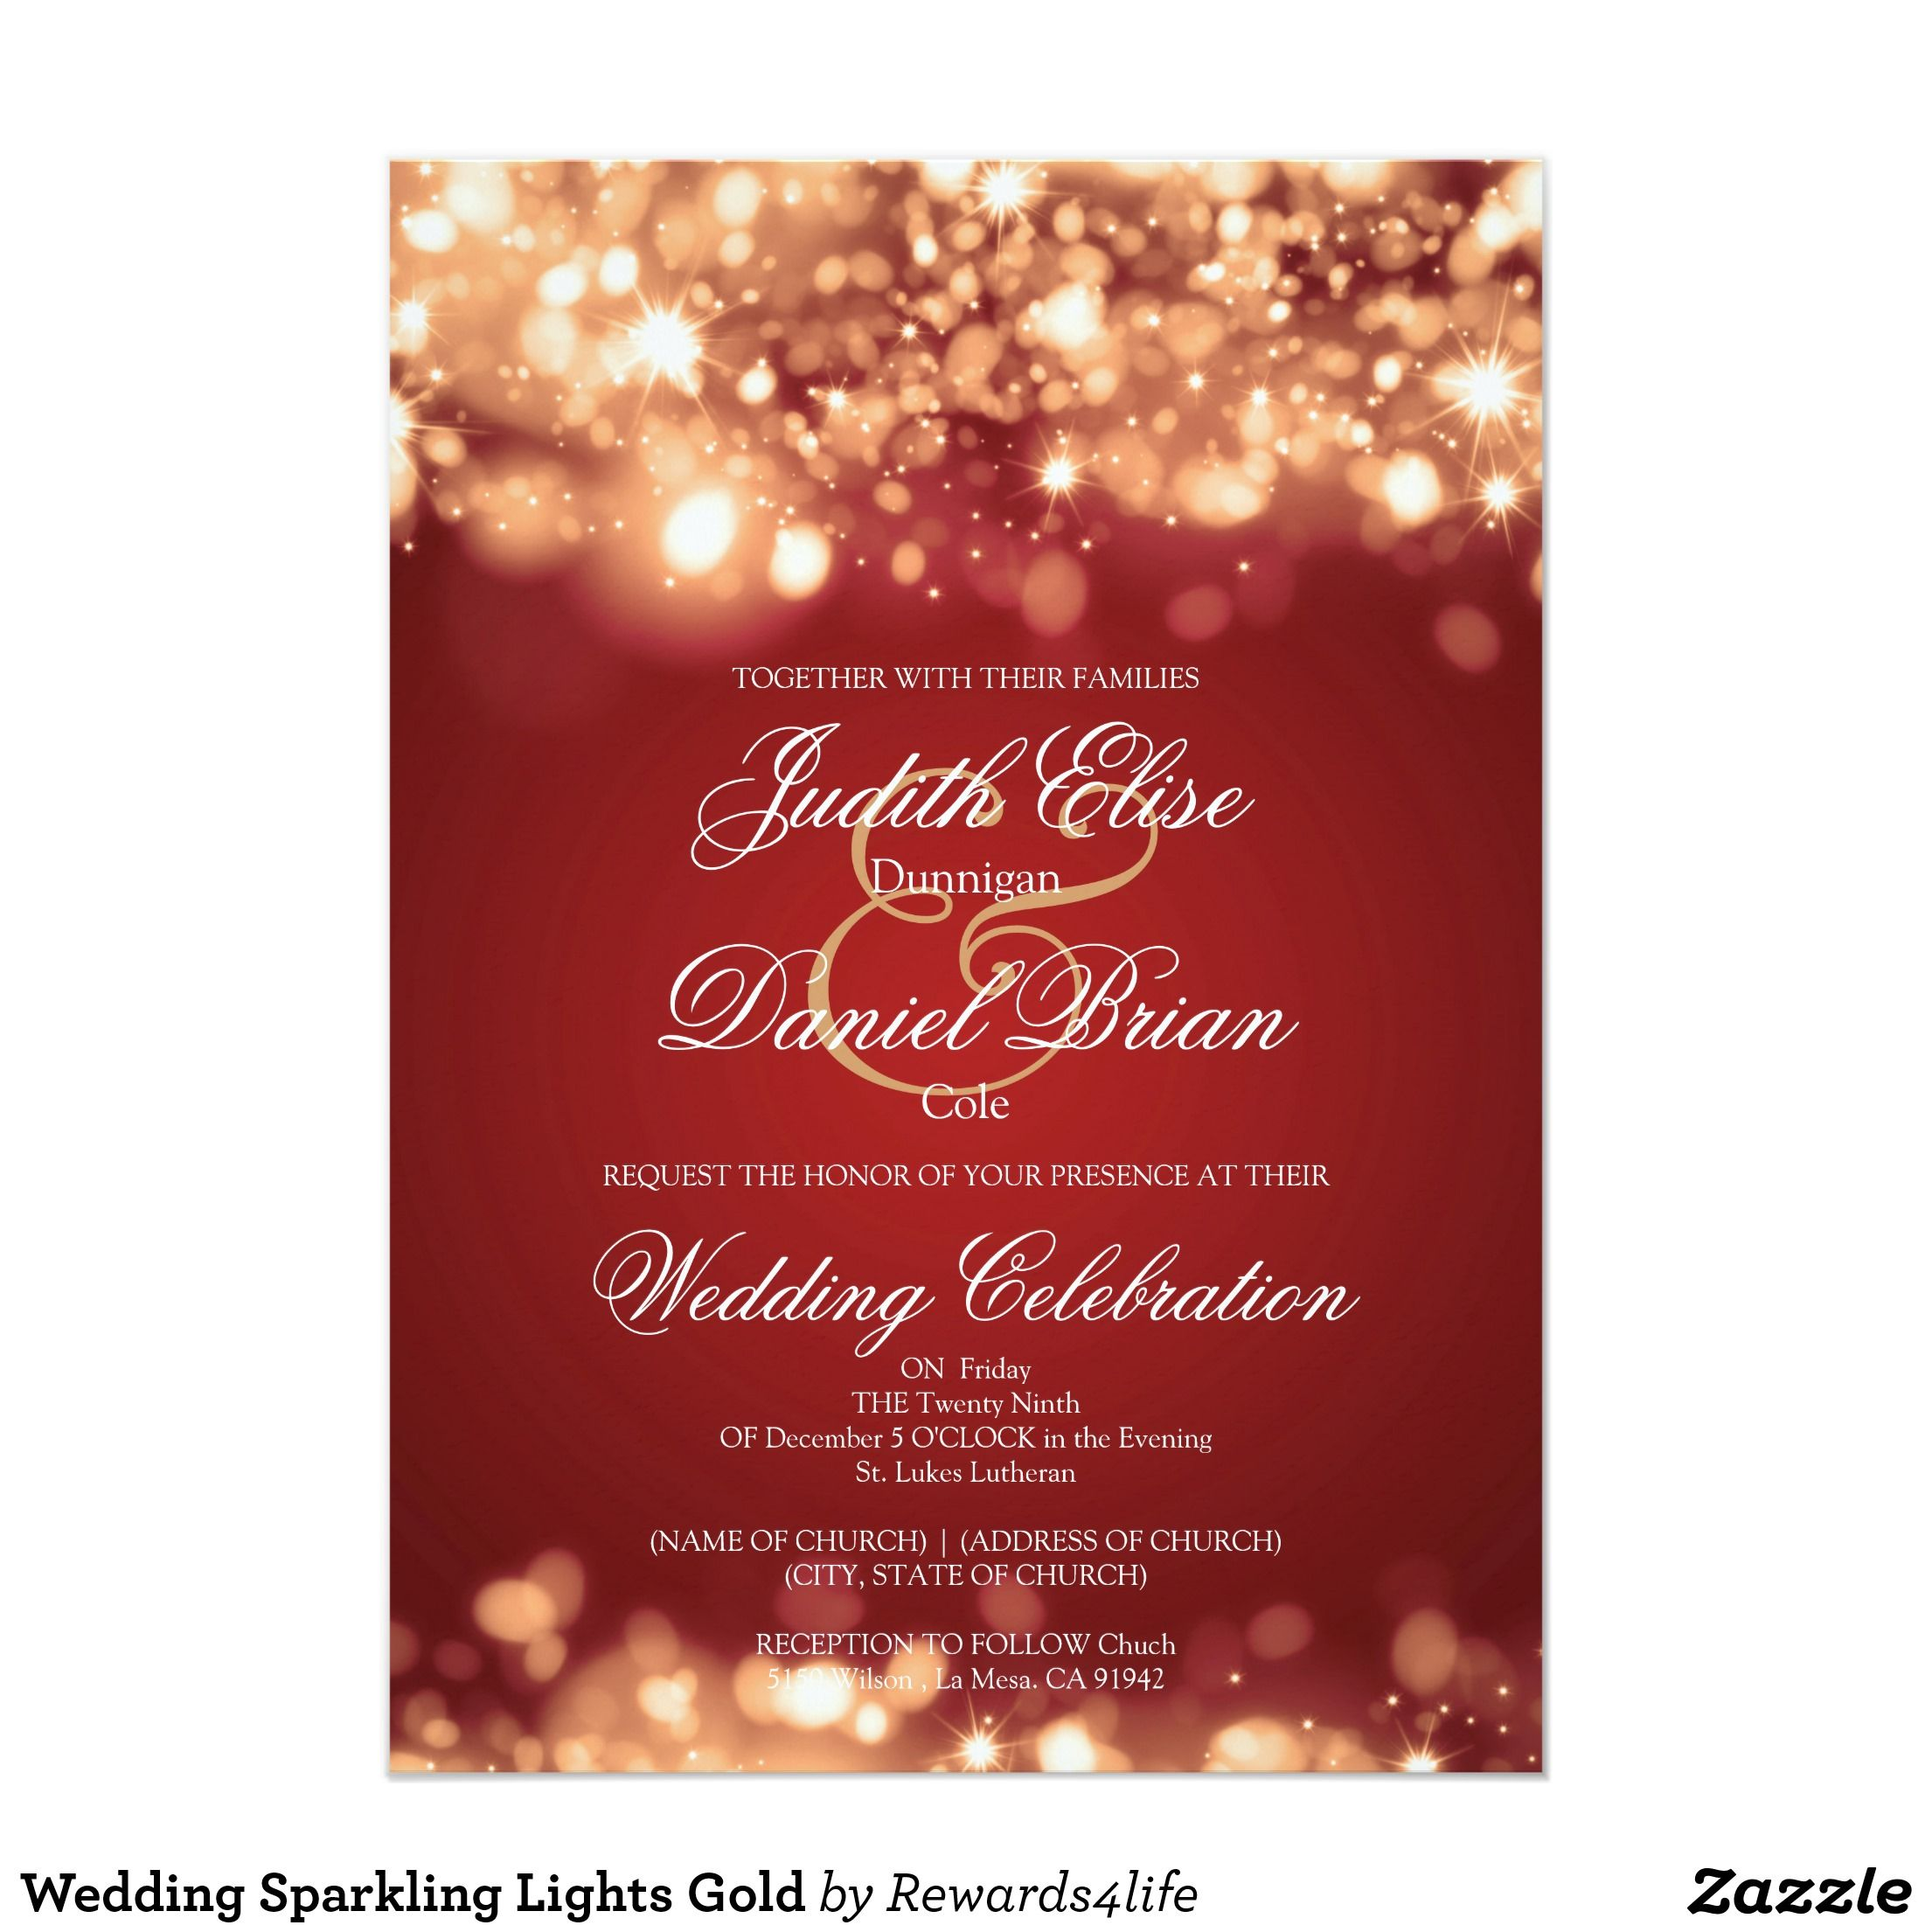 Wedding Sparkling Lights Gold Card | Christmas wedding, Wedding and ...